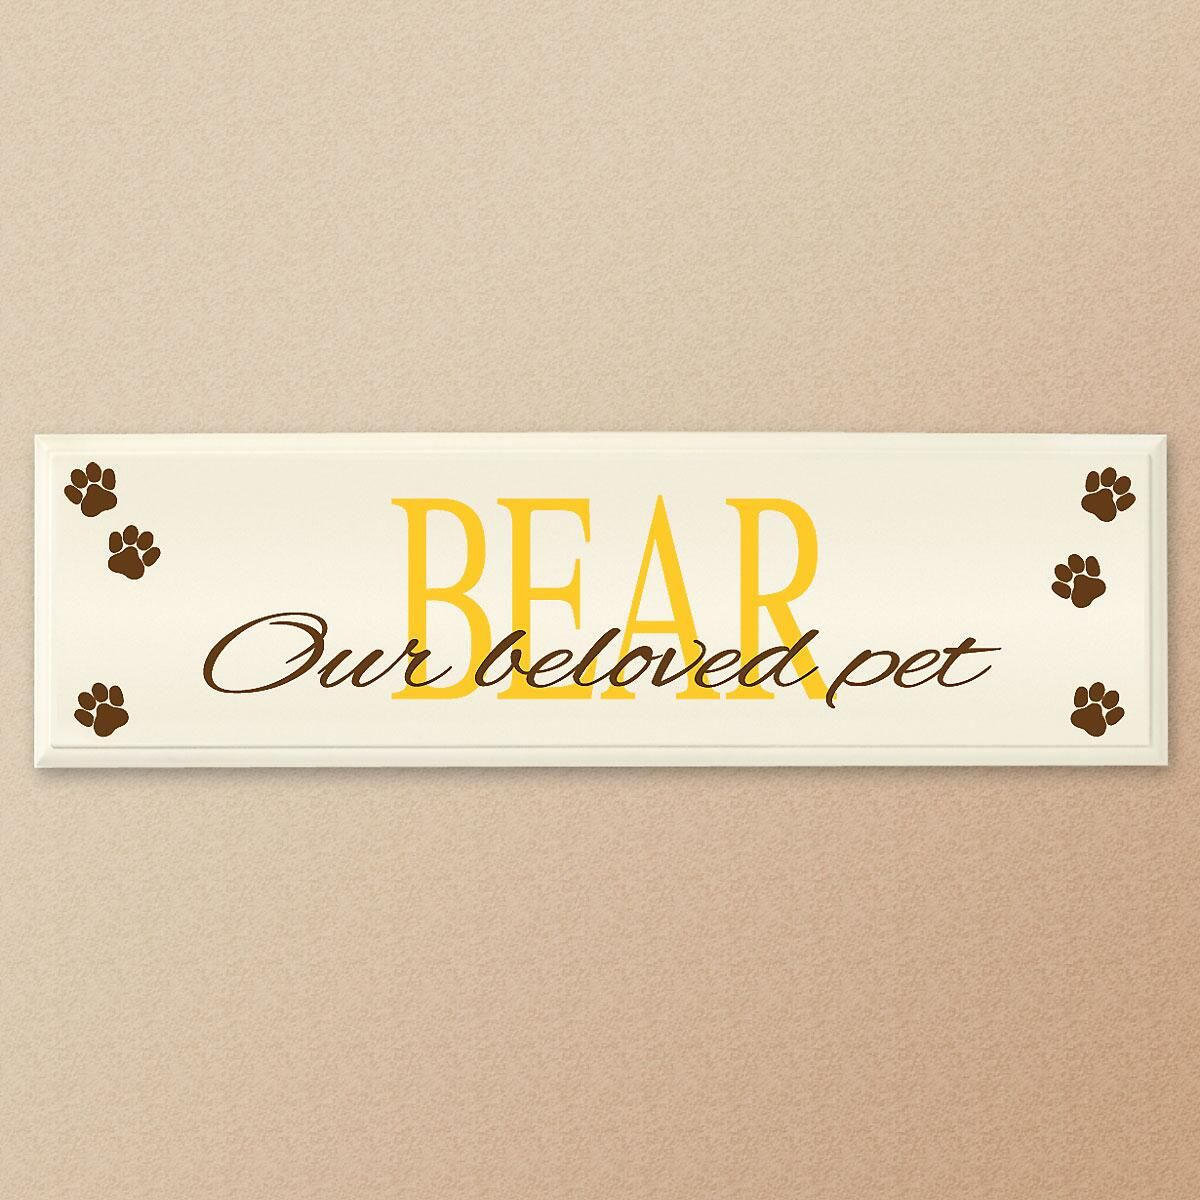 Our Beloved Pet Personalized Wooden Plaque